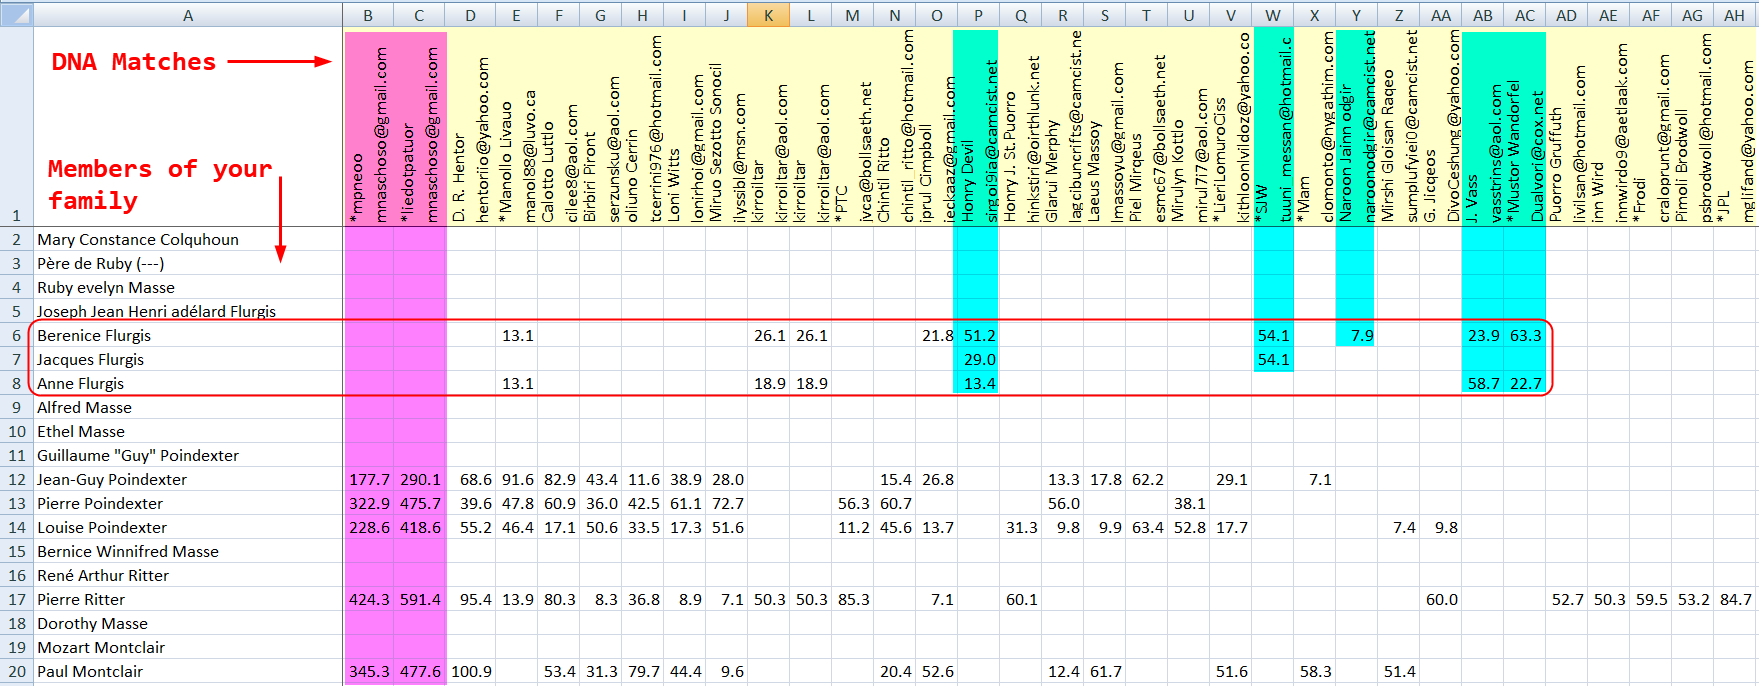 Dna Match Spreadsheet Within Dna Matches